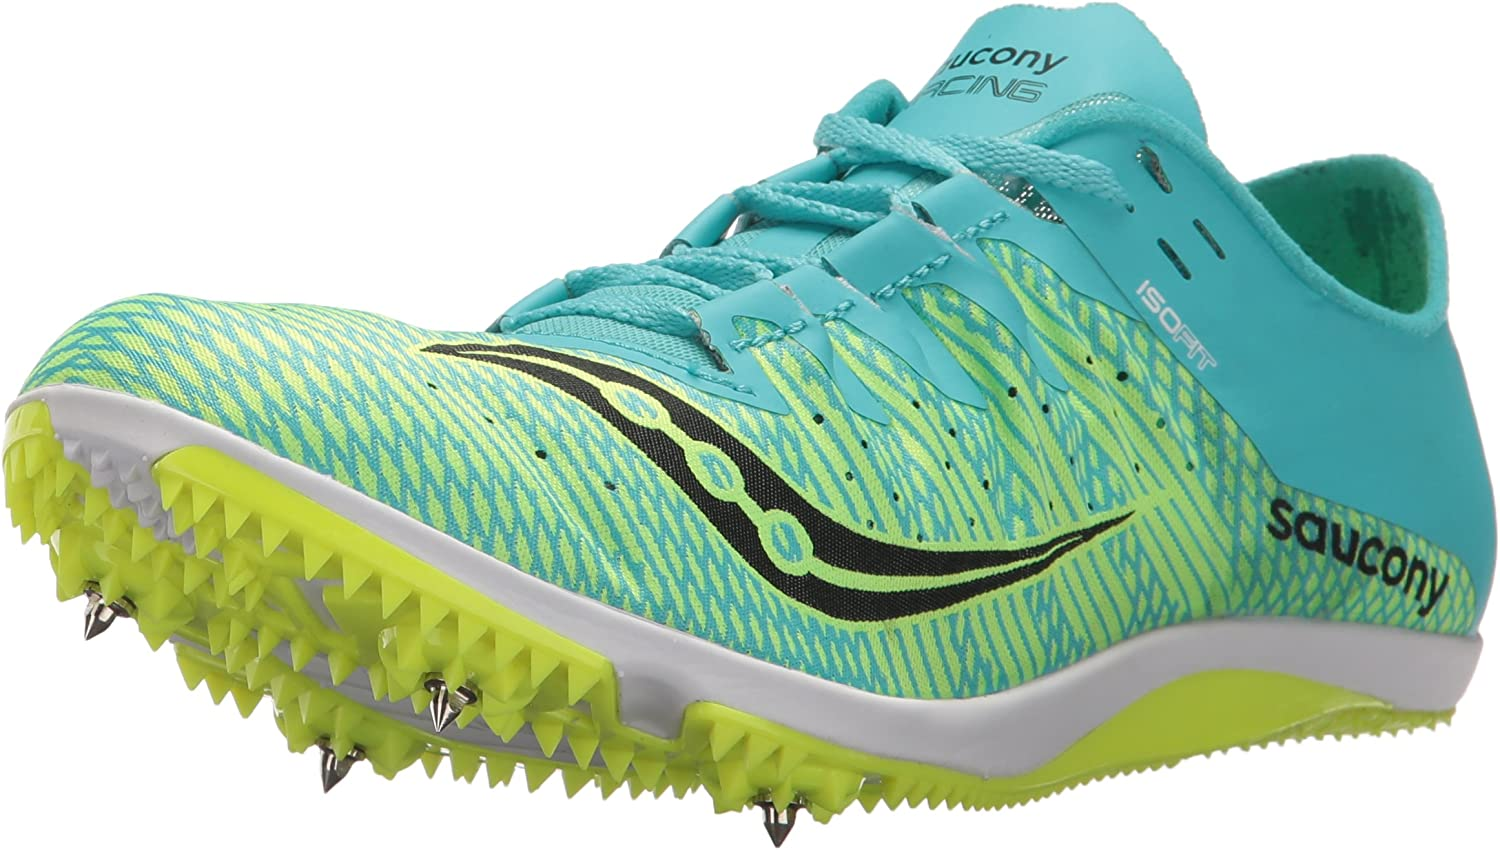 Endorphin 2 Track and Field Shoe